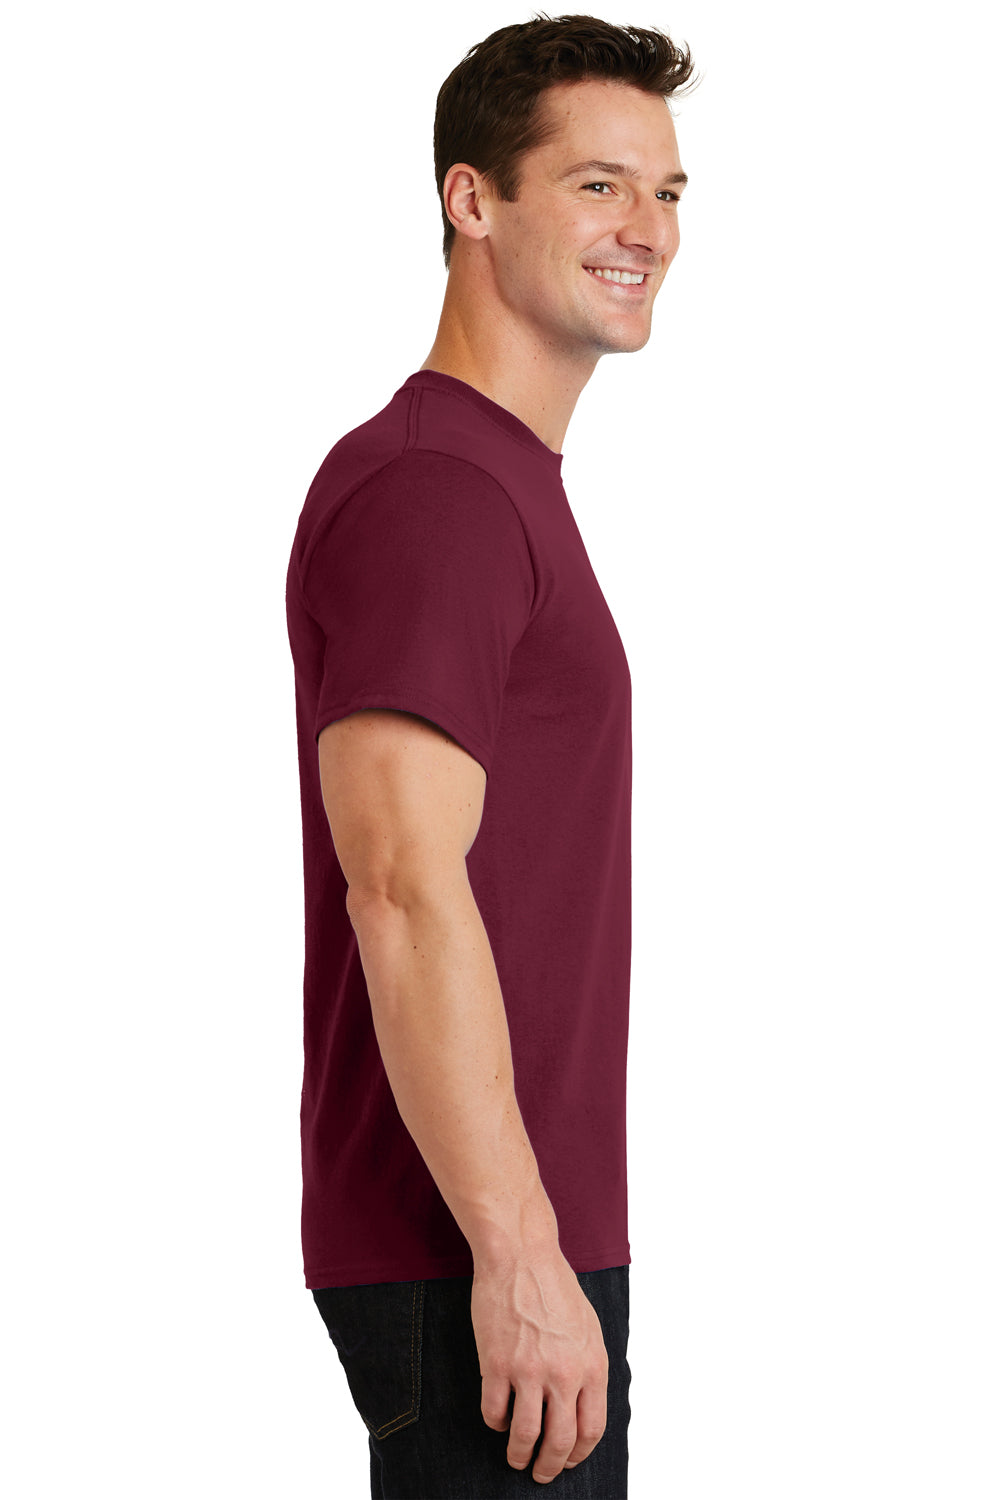 Port & Company PC61 Mens Essential Short Sleeve Crewneck T-Shirt Cardinal Red Side